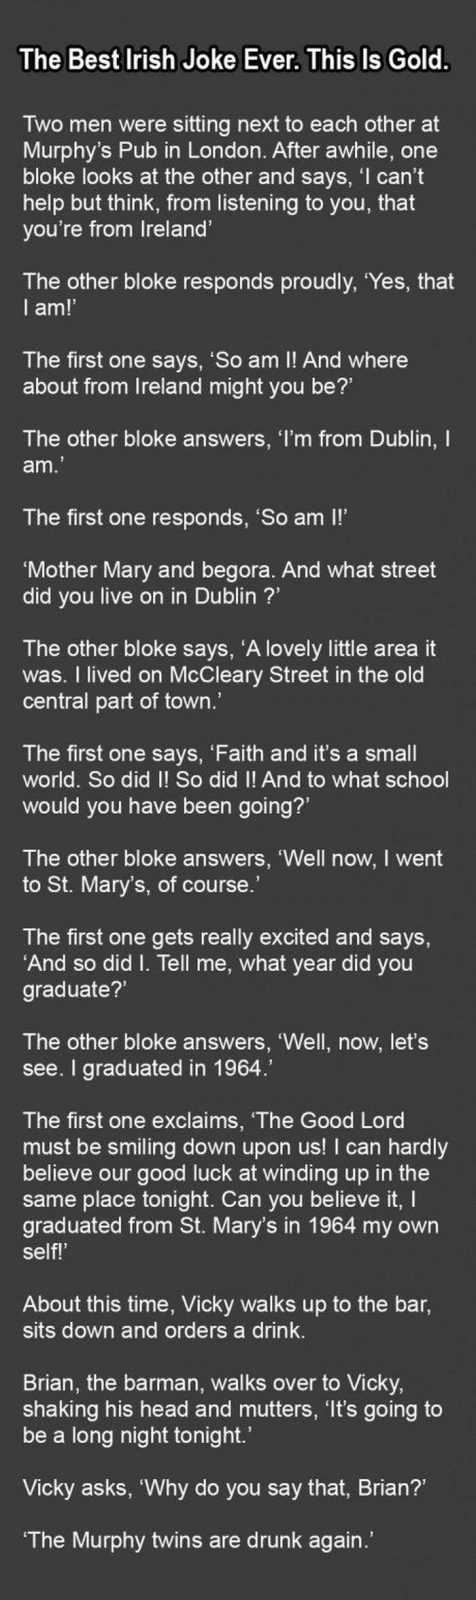 One Of Our Funny Stories About Irish Men